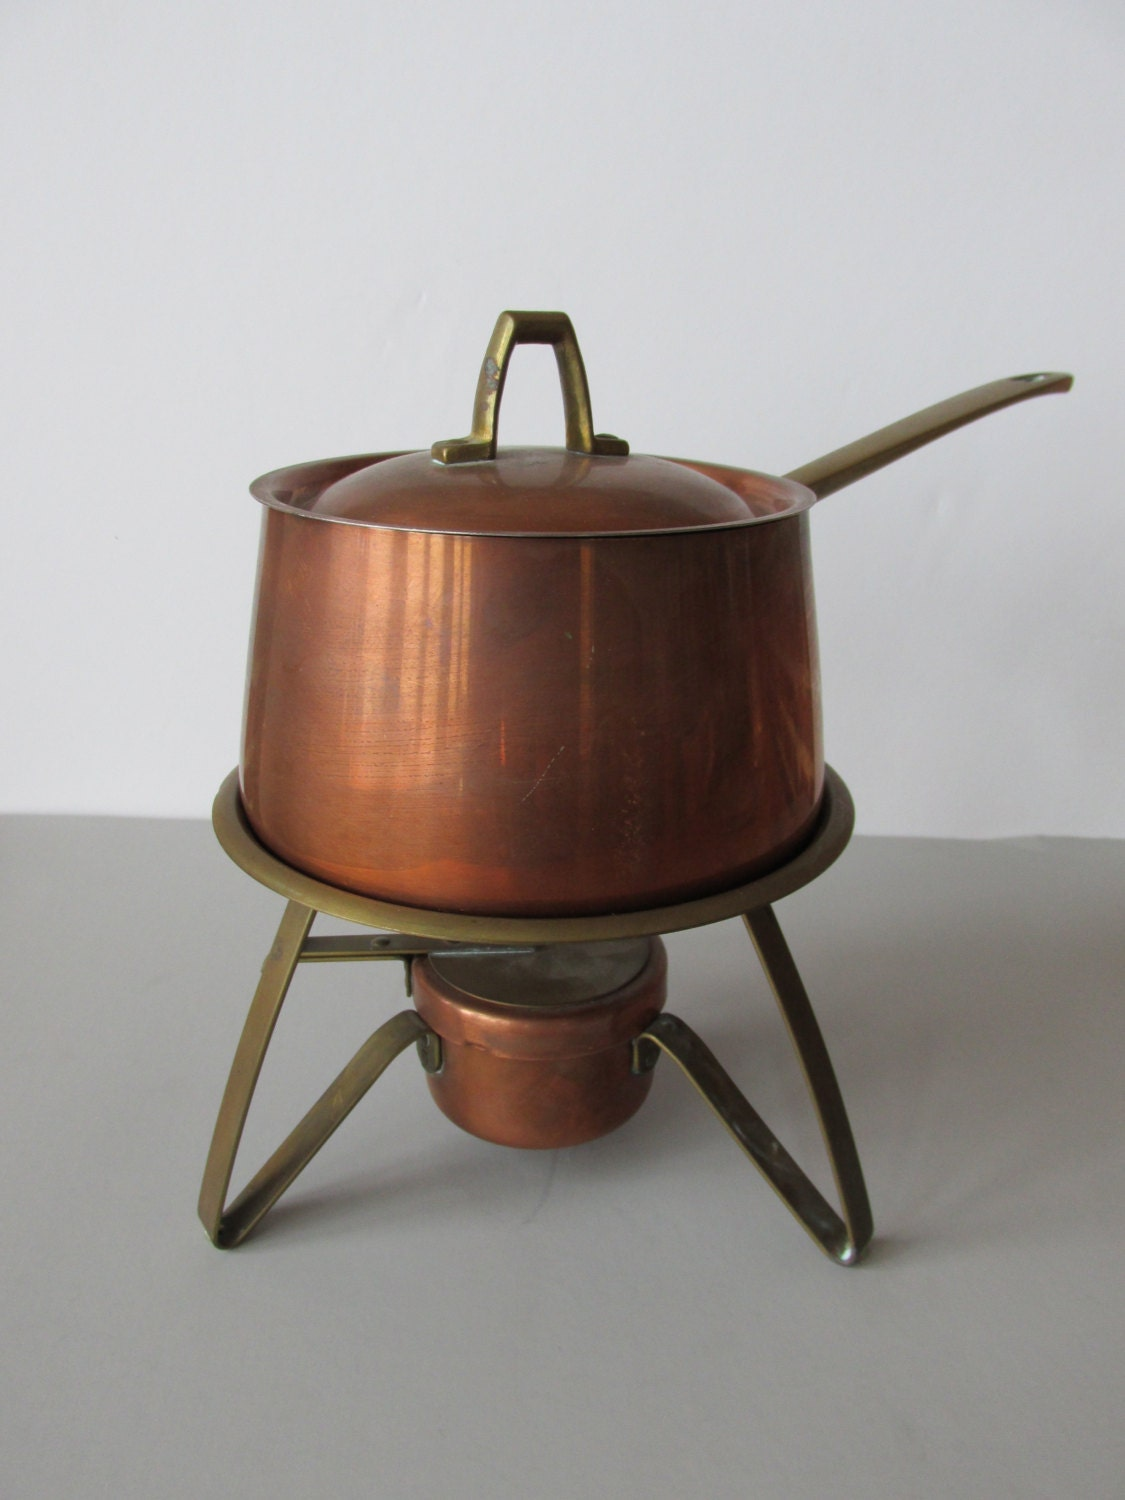 Vintage Paul Revere Copper Saucepan With Stand Copper Clad